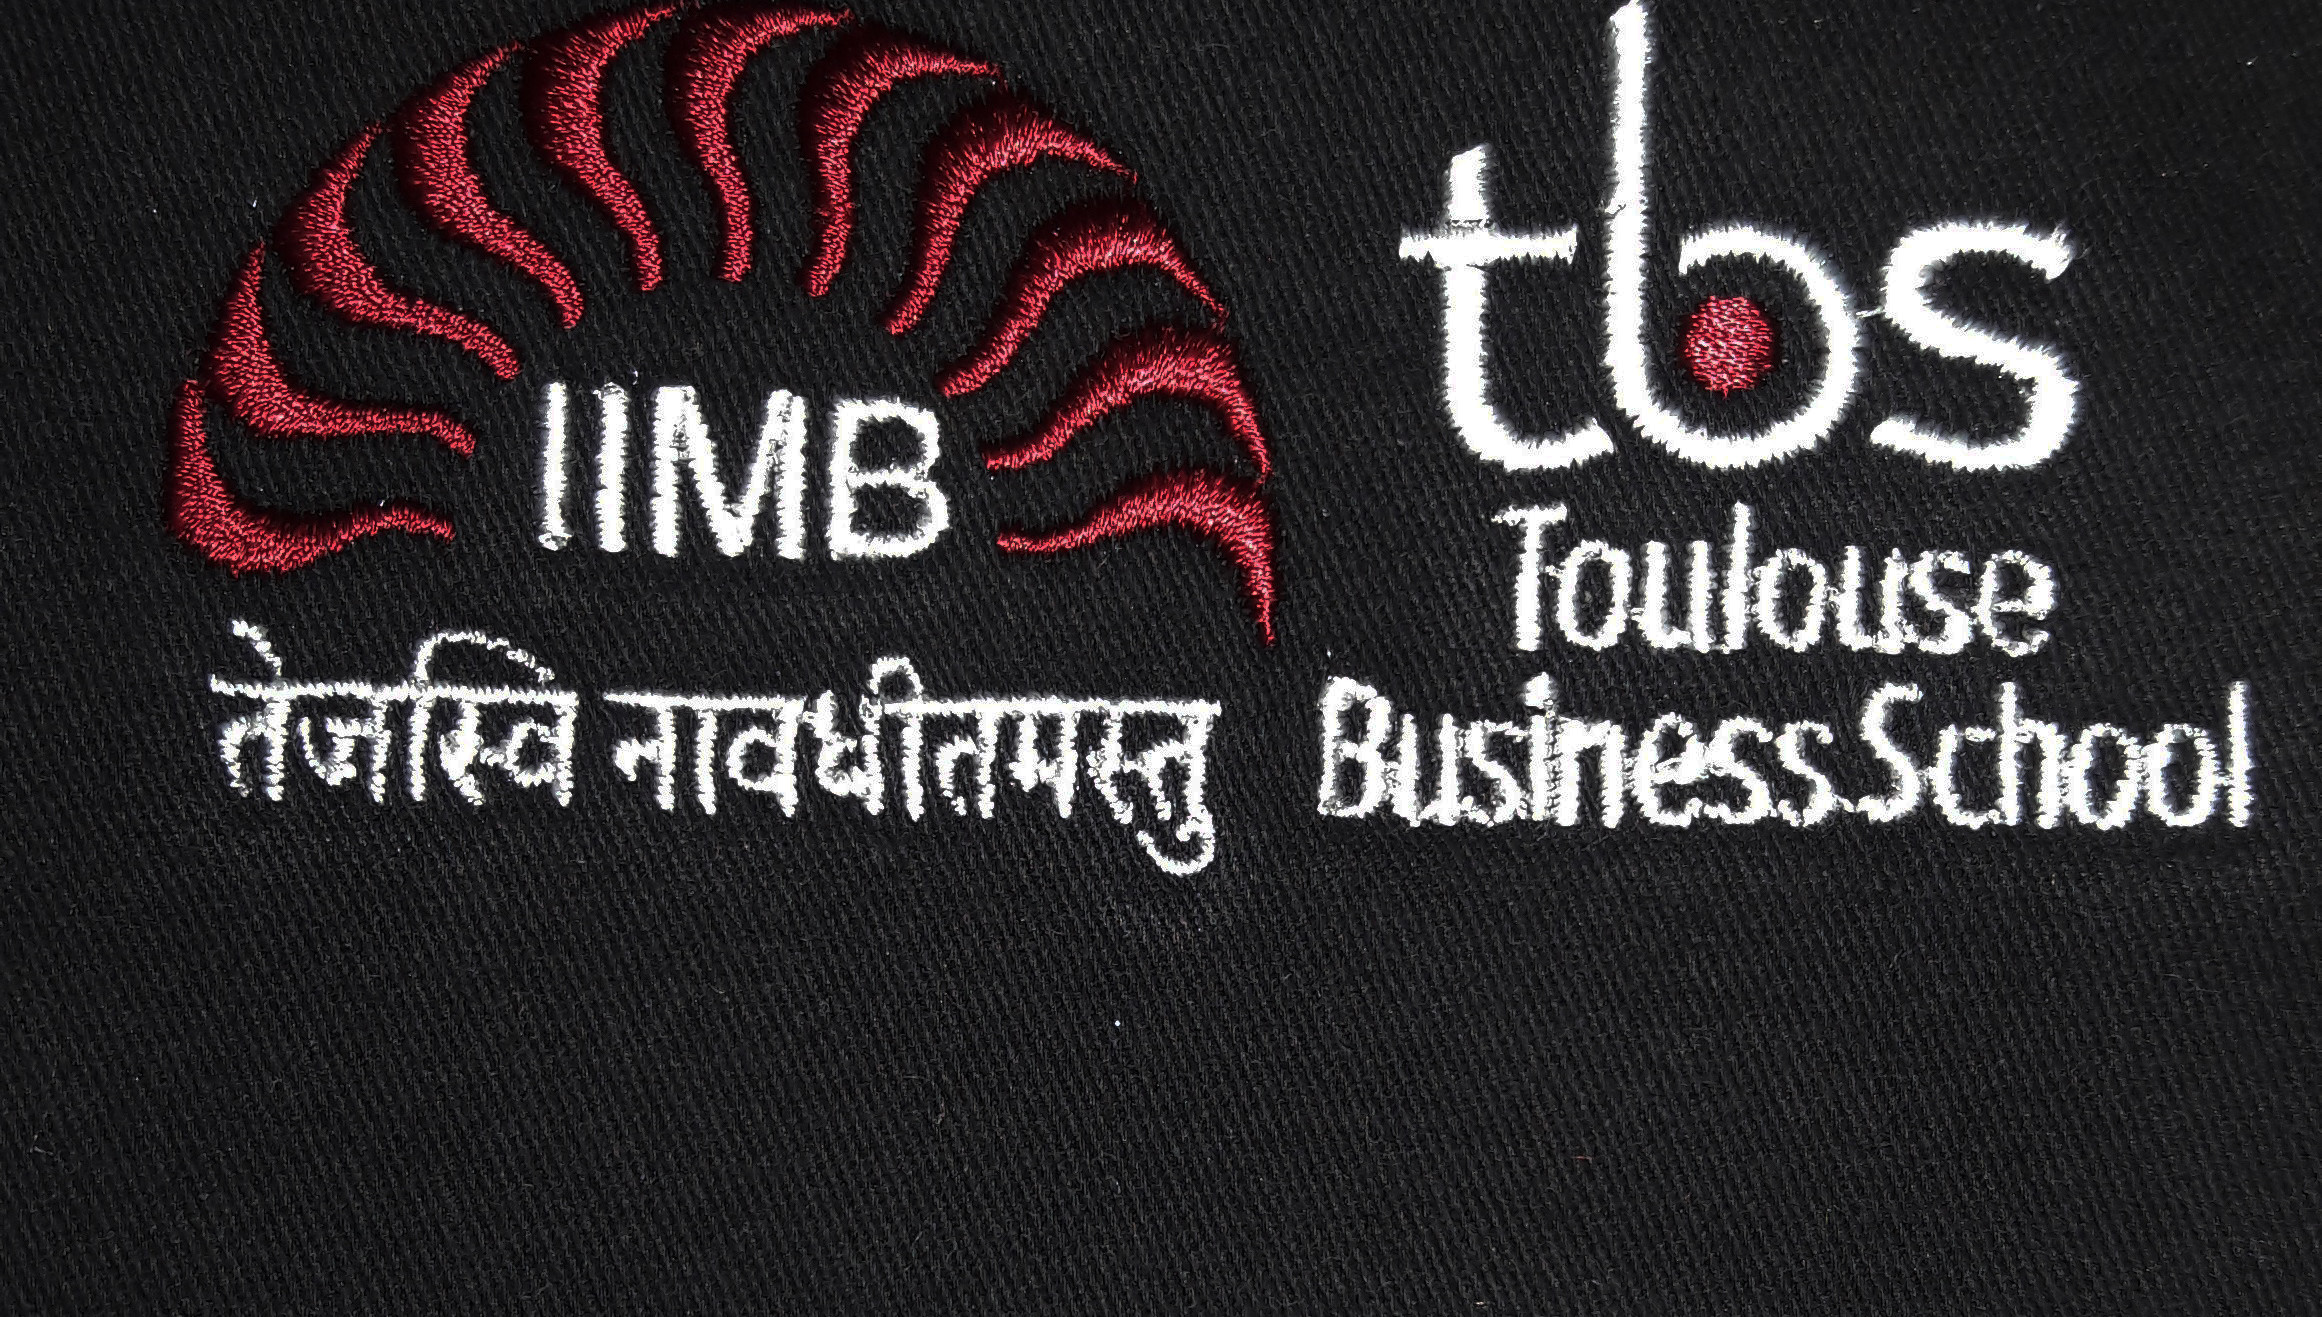 T shirt college events in bulk; print your design on polo tshirts, custom t shirt print in bengaluru , official merchandise for business promotions, promotional cotton t shirt printing in bengaluru, t shirt printing online, corporate t shirt for business, create custom t shirt designs online,  print your designs on polo t shirts, red color polo t shirts for couples, royal blue t shirt for corporate branding, navy blue official t shirts, grey melange polo t shirts with logo embroidery, personalized white t shirts, logo embroidery on black polo t shirts, sea green color polo t shirts online, charcoal grey polo t shirts online, premium maroon tees with customised printing,